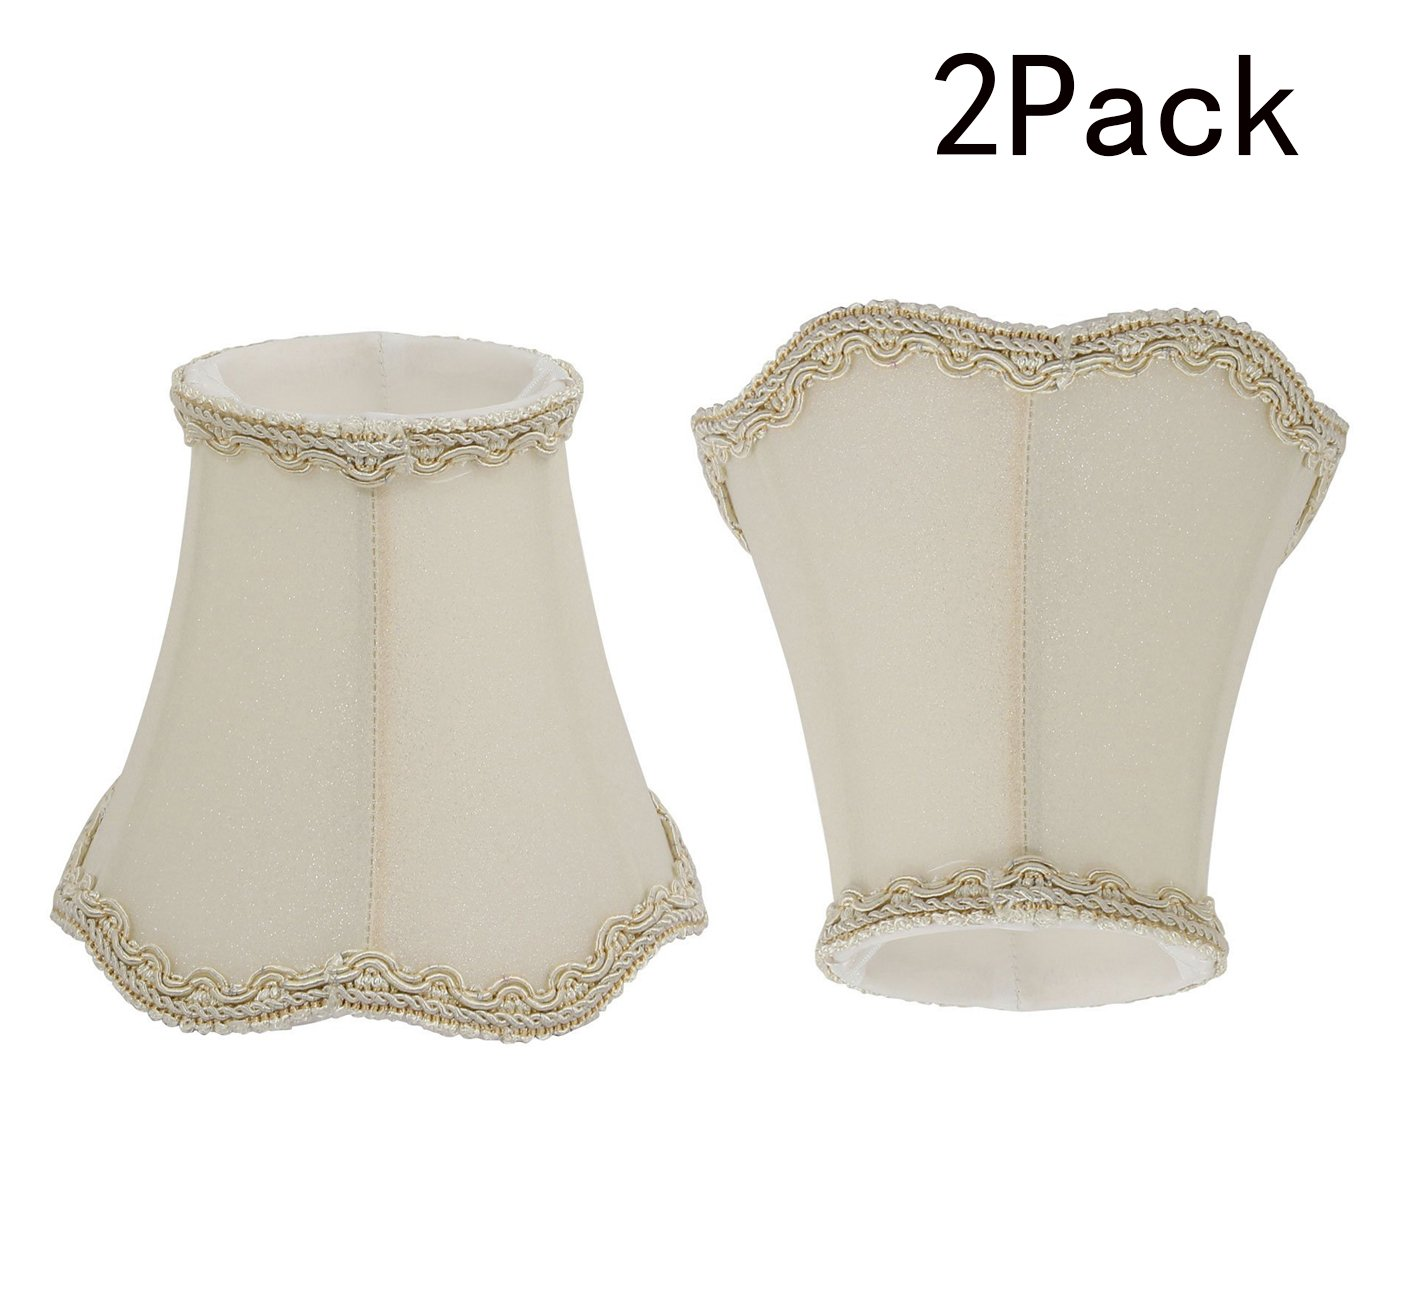 Yohii Fabric Lamp Shades for Chandeliers, Sconces, Window Candles,Candelabra Bulbs (Beige)